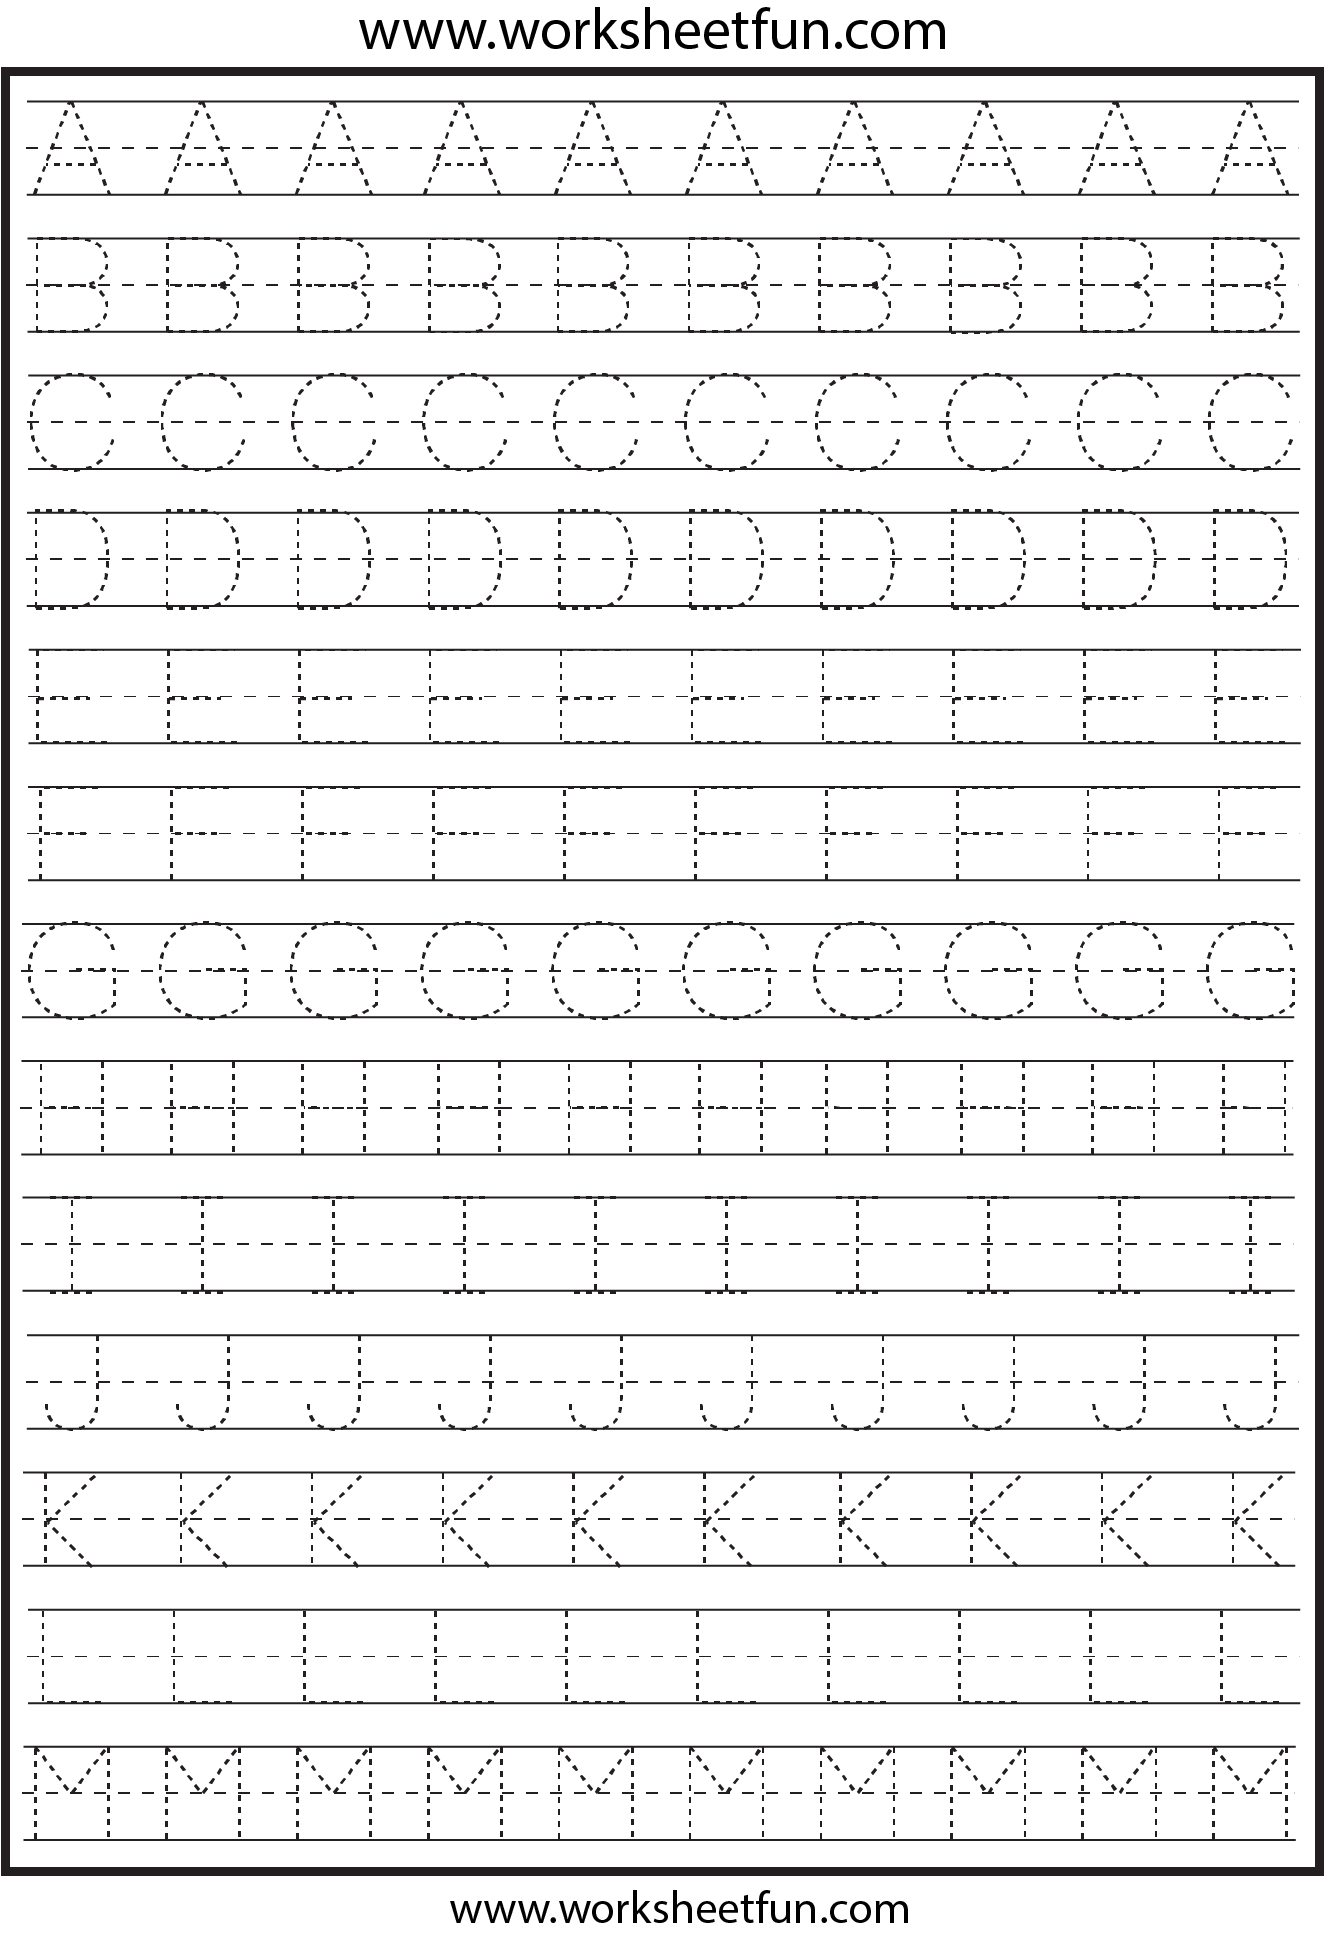 Worksheets Abc Tracing Worksheets For Kindergarten letter tracing i need a ton of these printed lol school stuff lol